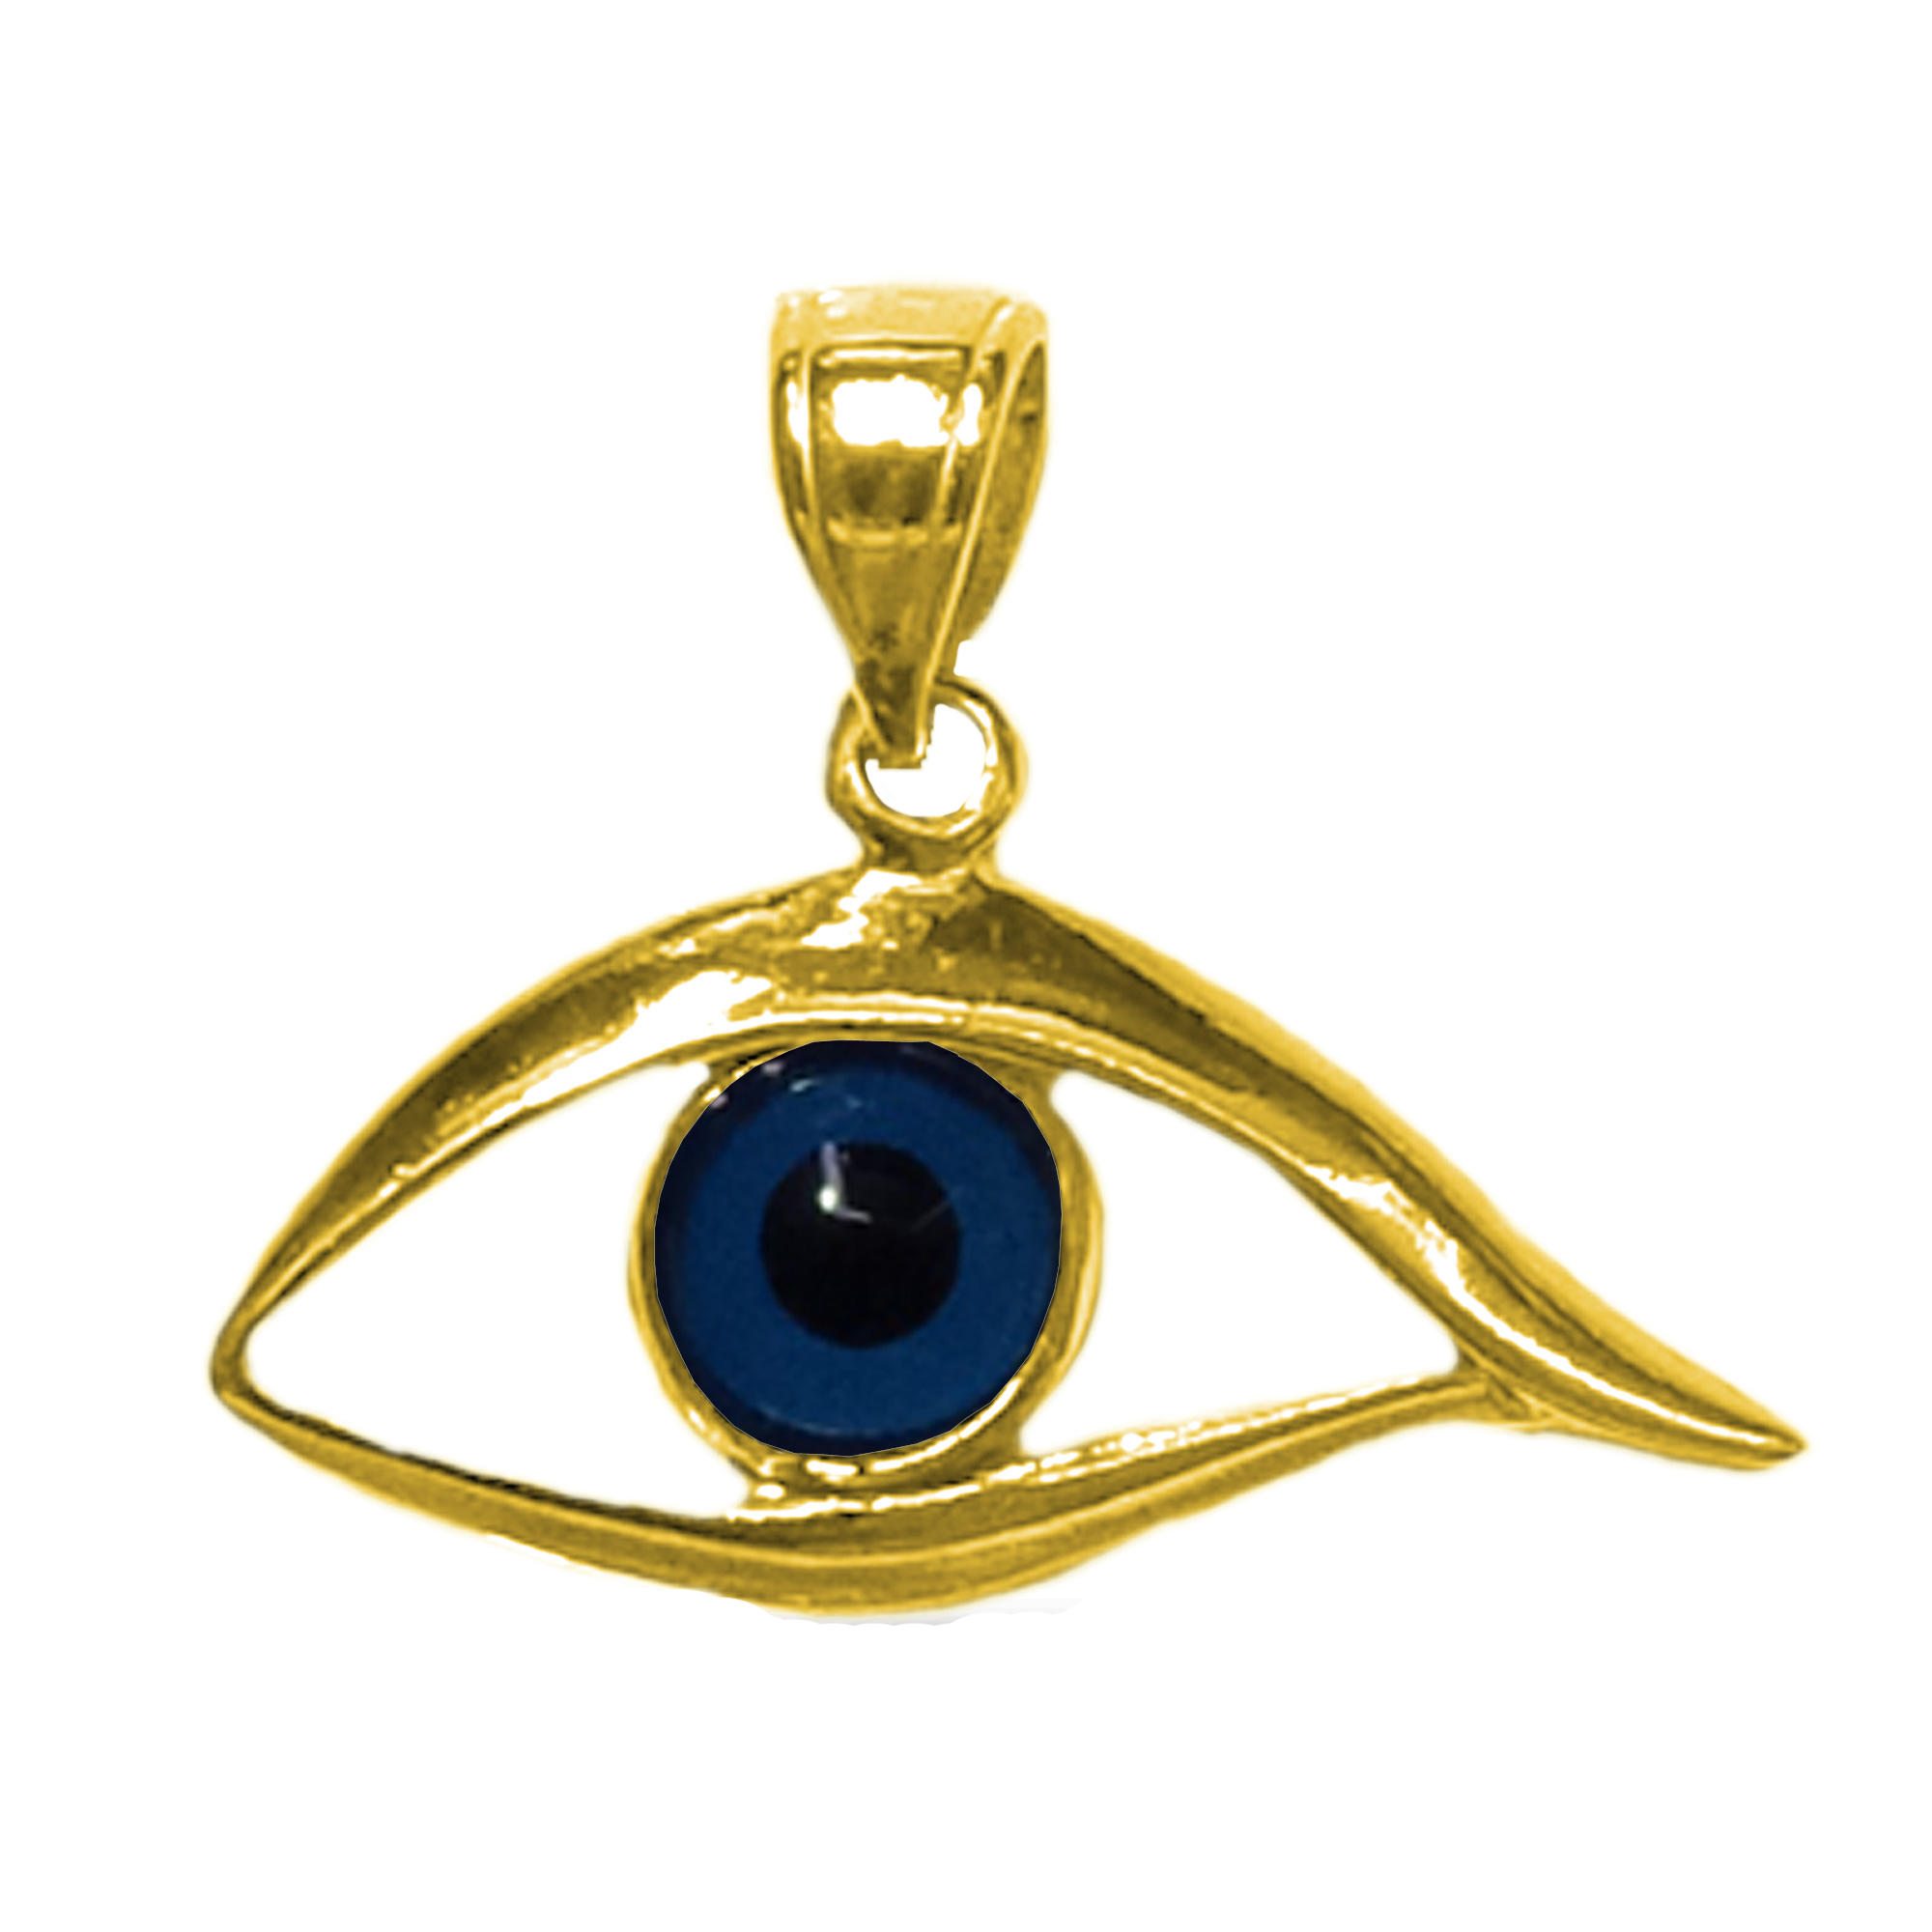 Sterling Silver 18 Karat Gold Overlay Plated Evil Eye Pendant Inspired from the of Greek ancient jewelry era, this sterling silver charm features the Evil Eye motif, also known as Mati in greek, bordering a beautiful  glass Evil Eye. Measuring at 20mm x 25mm diameter, this greek evil eye is 18k yellow gold overlay.